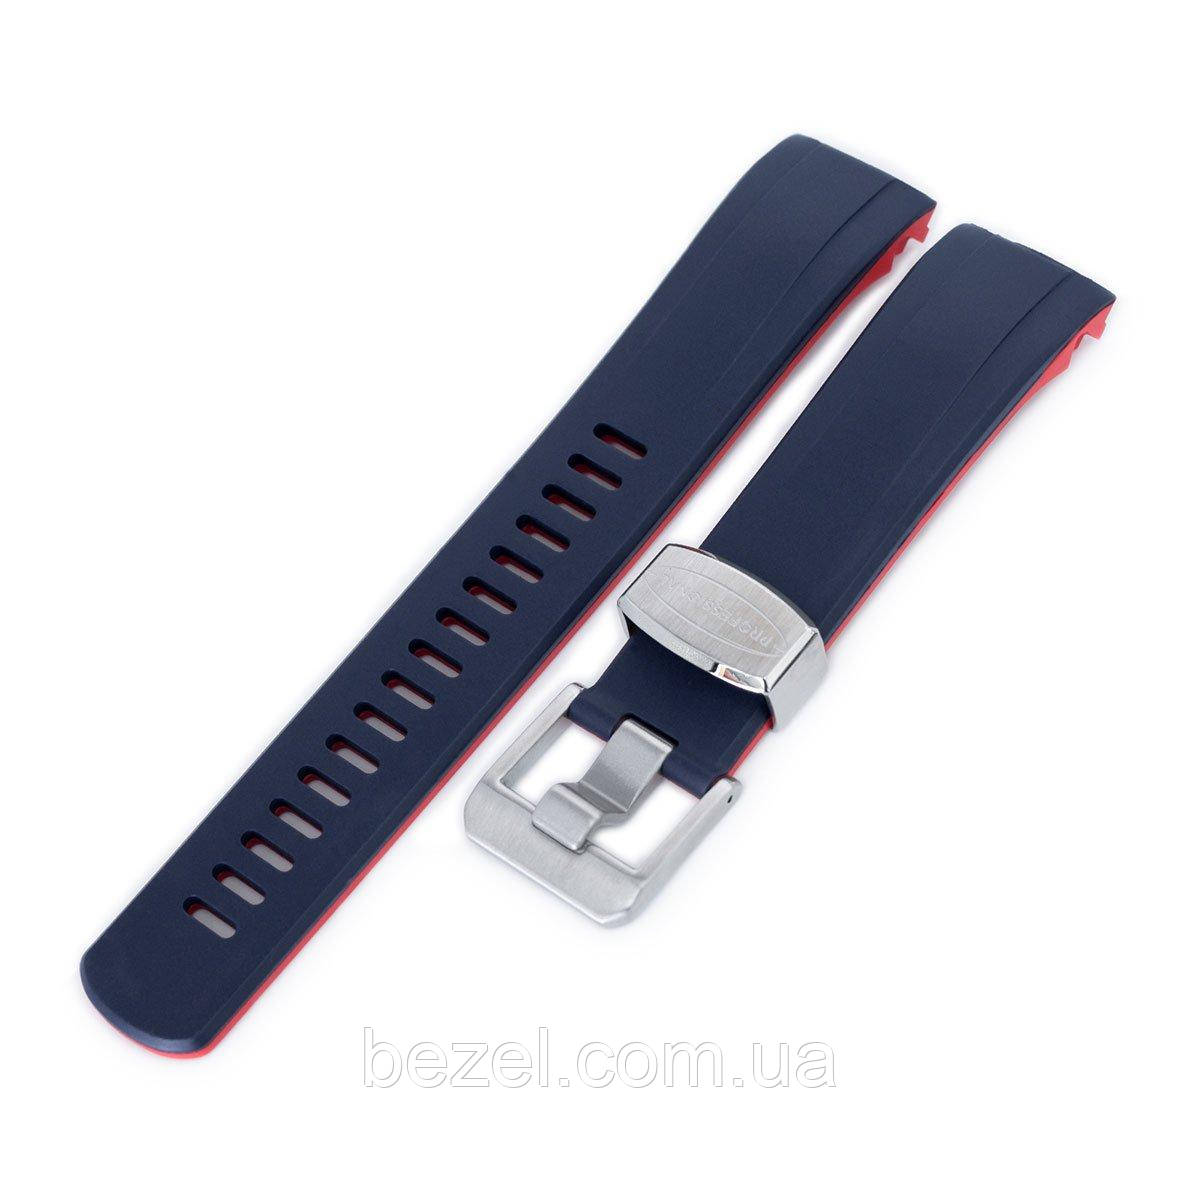 22mm Crafter Blue - Dual Color Blue & Red Rubber Curved Lug Watch Strap for Seiko Samurai SRPB51